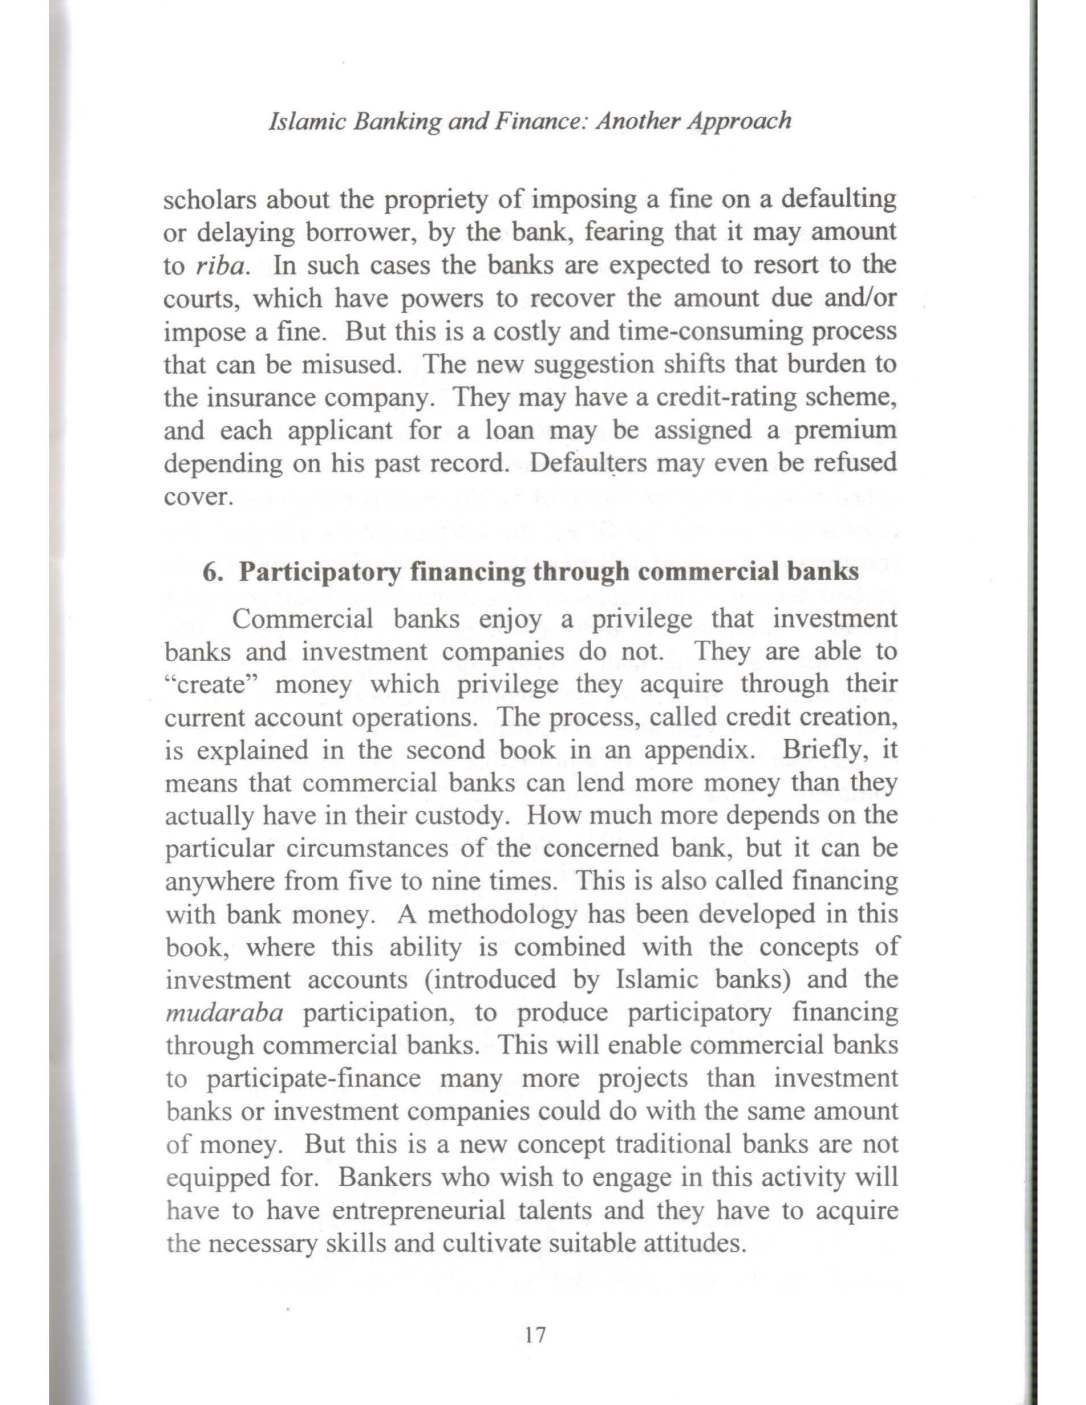 Islamic Banking and Finance - Another Approach_Page_18